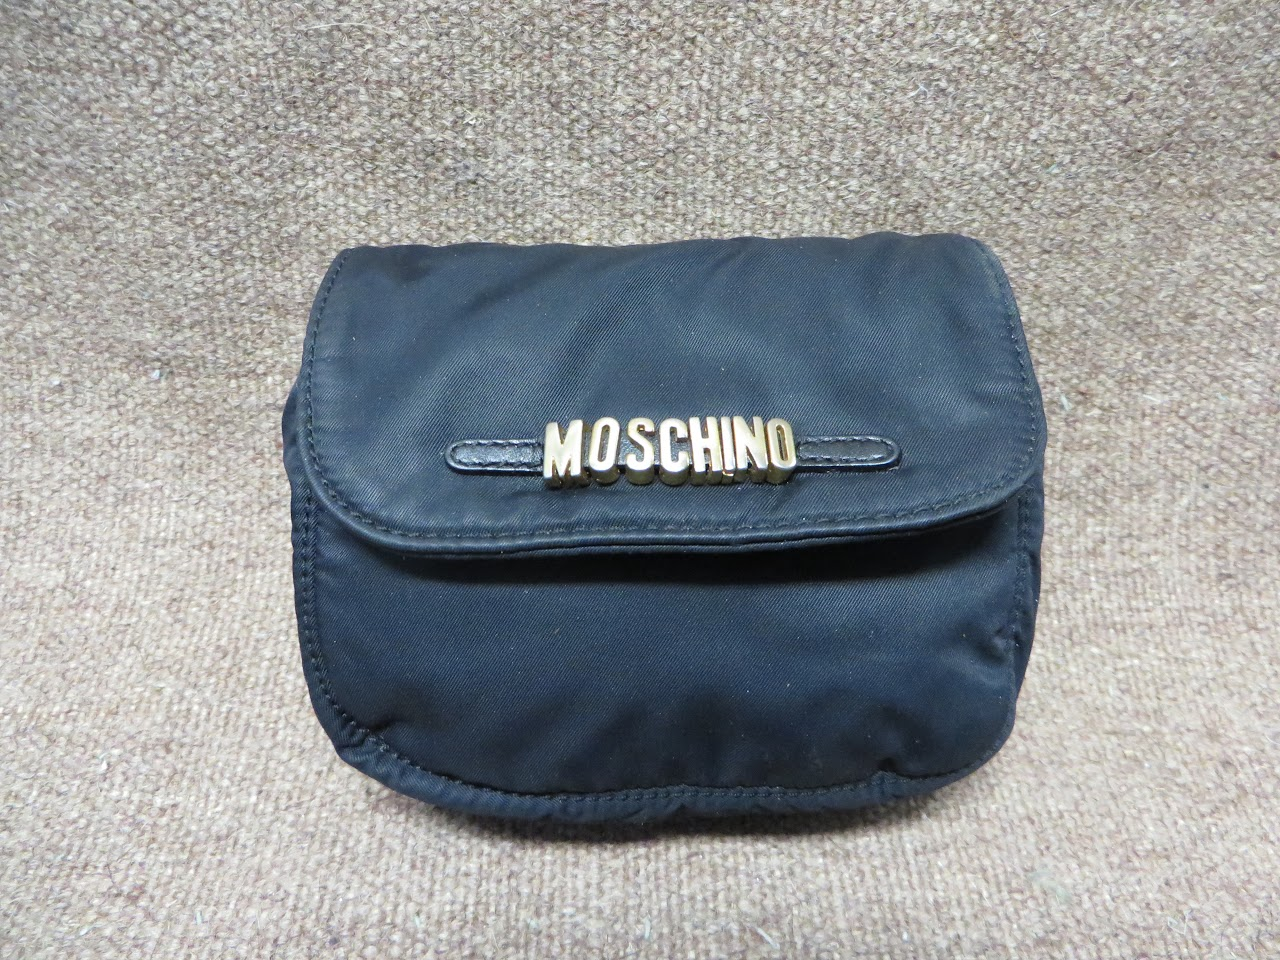 Moschino Small Pouch